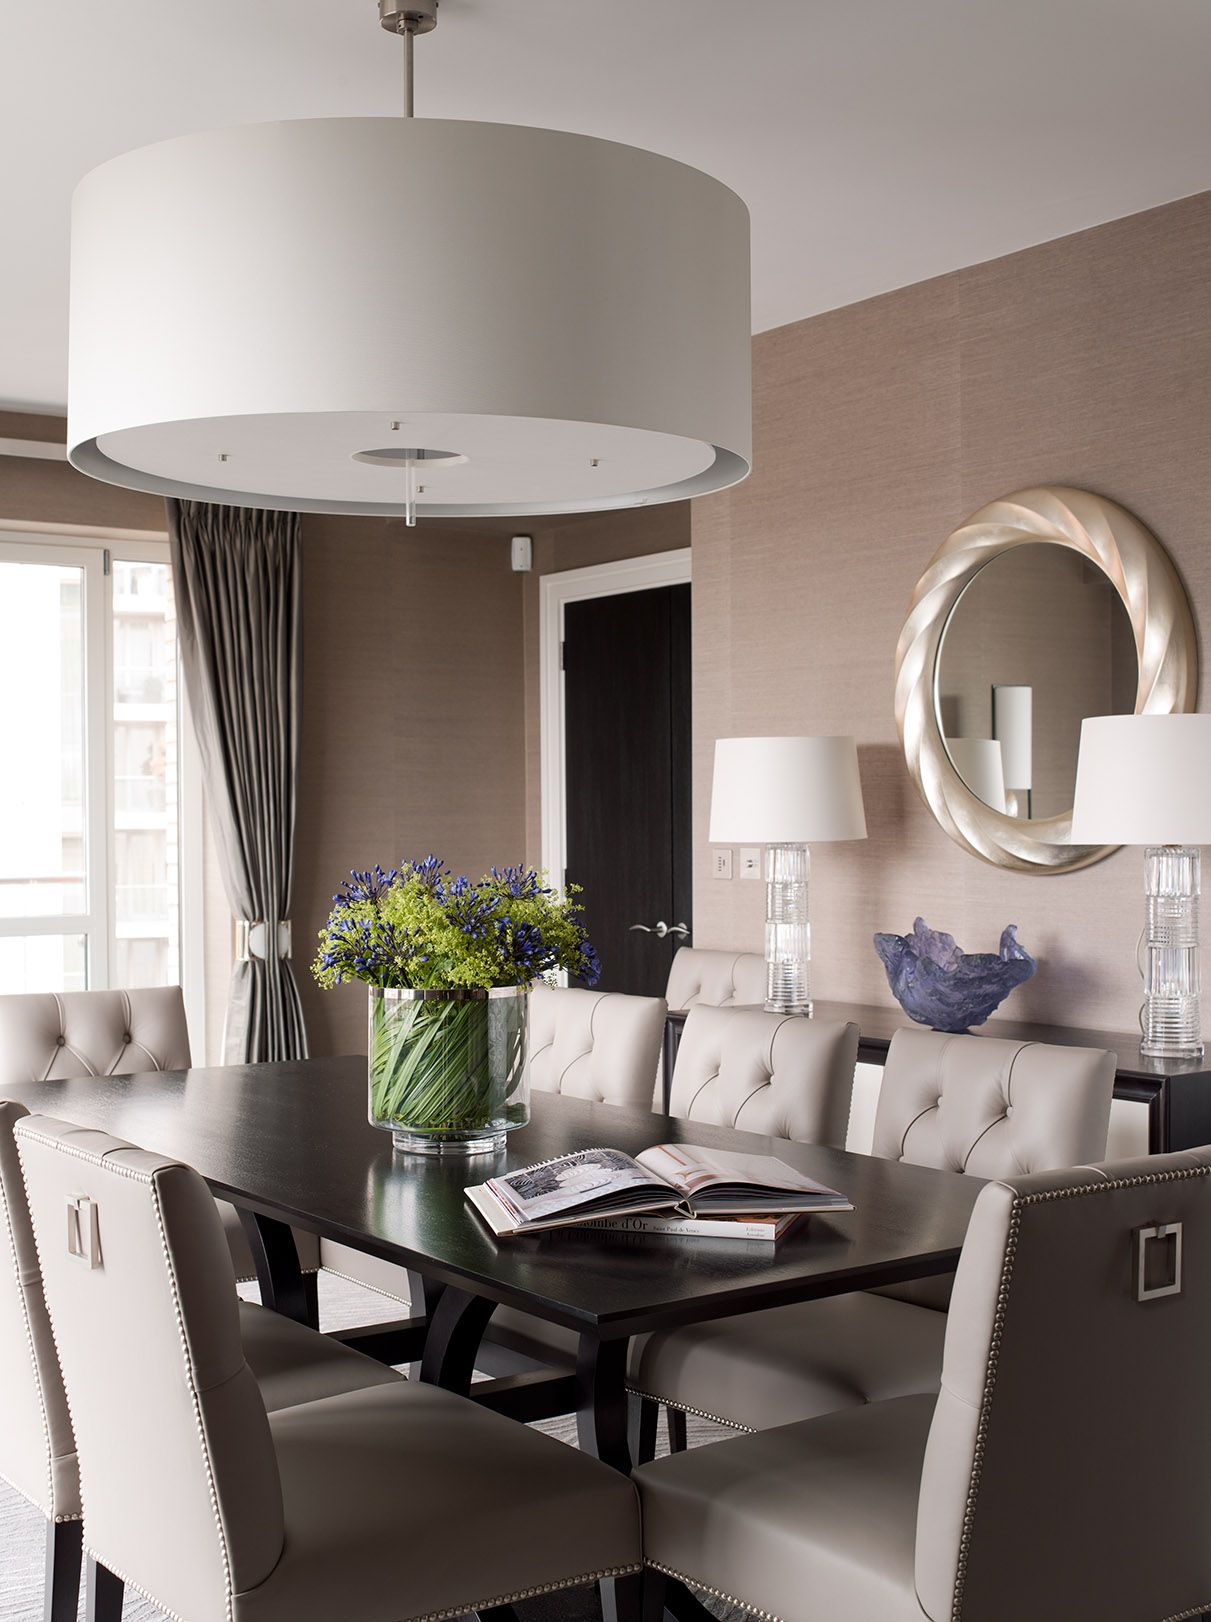 Eight Off White Tufted Chairs Surround A Dark Wood Table In This Chic  Transitional Dining Room. A Dark Blue Accent Wall Attracts The Eye To The  Buiu2026